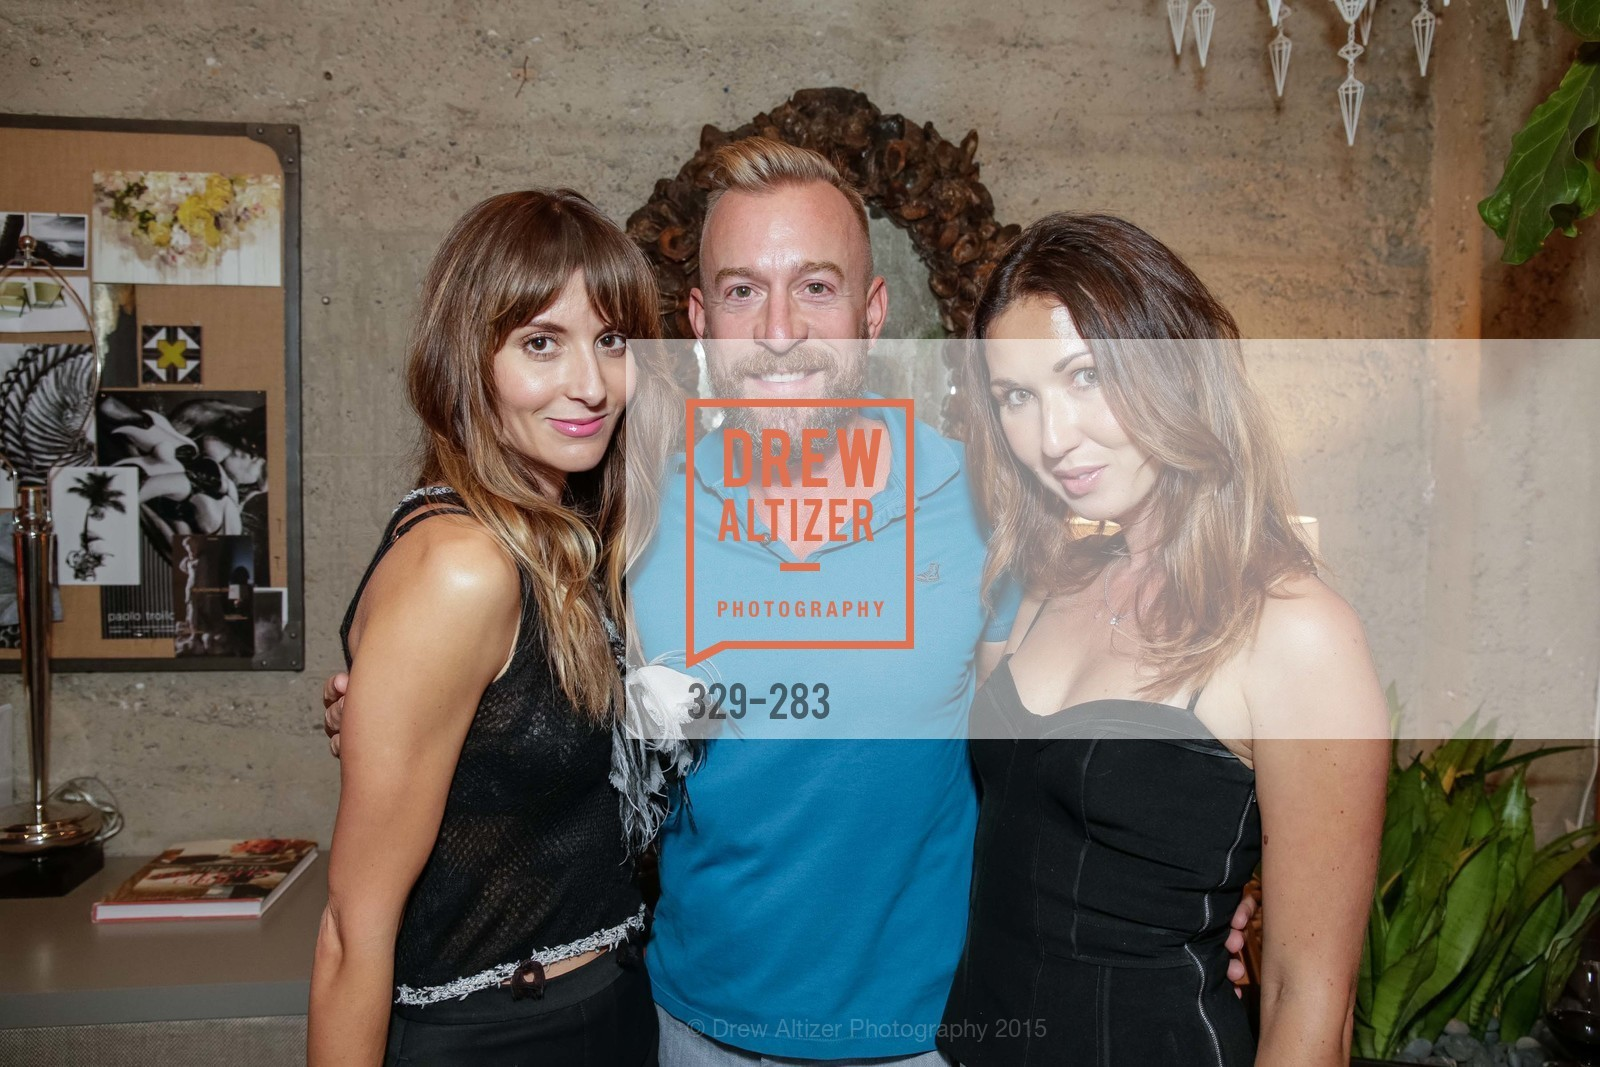 Mary Gonsalves Kinney, Camilla Papale, Jay Jeffers Host Will Harlan, Jay Jeffers CAVALIER. 1035 Post Street, San Francisco 94109, September 10th, 2015,Drew Altizer, Drew Altizer Photography, full-service agency, private events, San Francisco photographer, photographer california